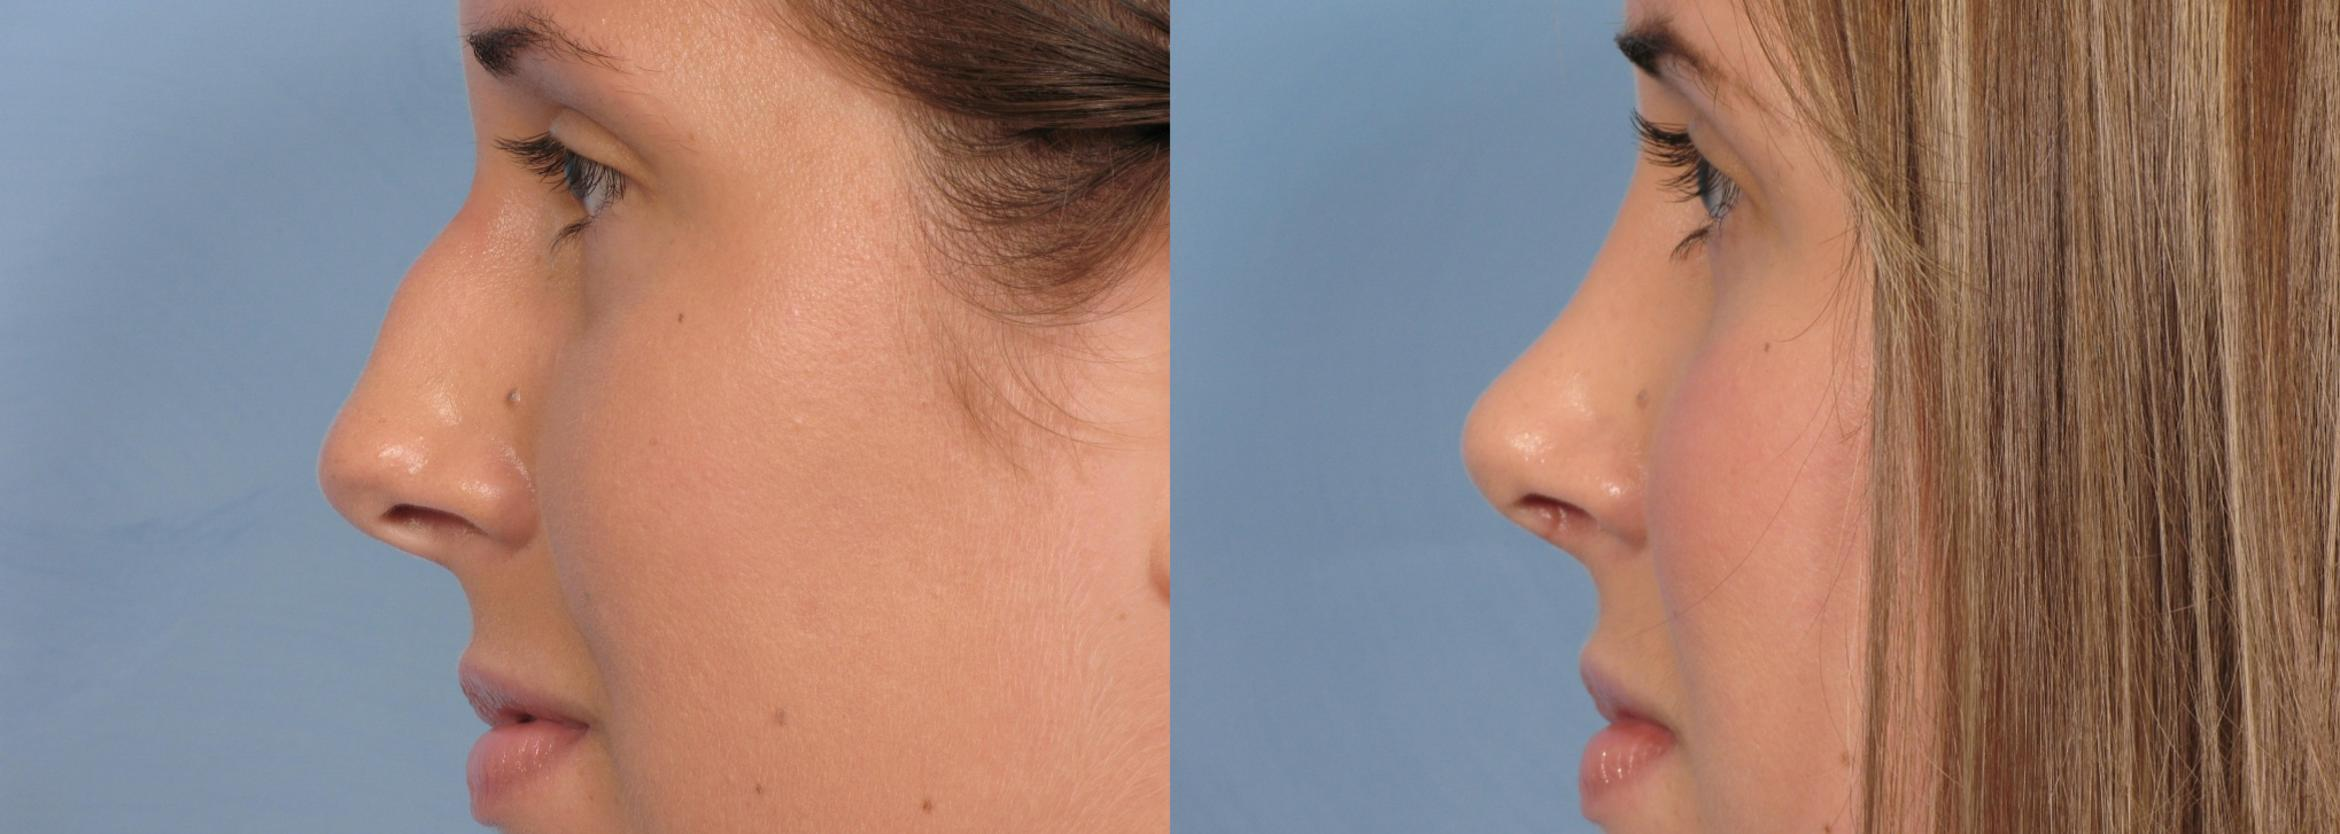 Rhinoplasty (Nose Reshaping) Case 91 Before & After View #1 | Naples, FL | Kent V. Hasen, M.D.